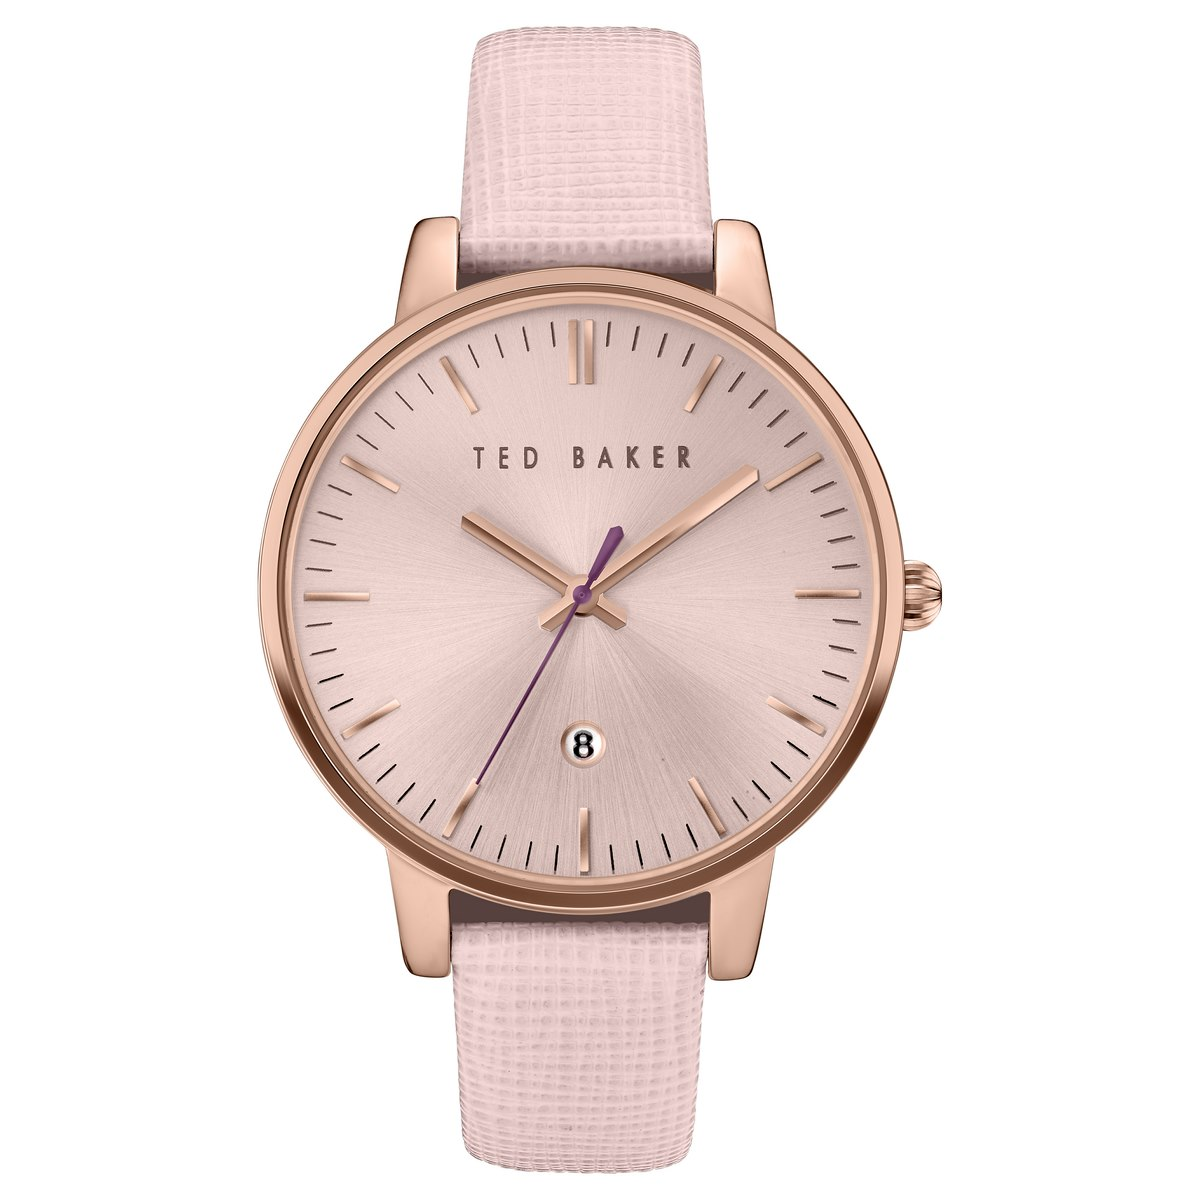 Montre TED BAKER Cuir